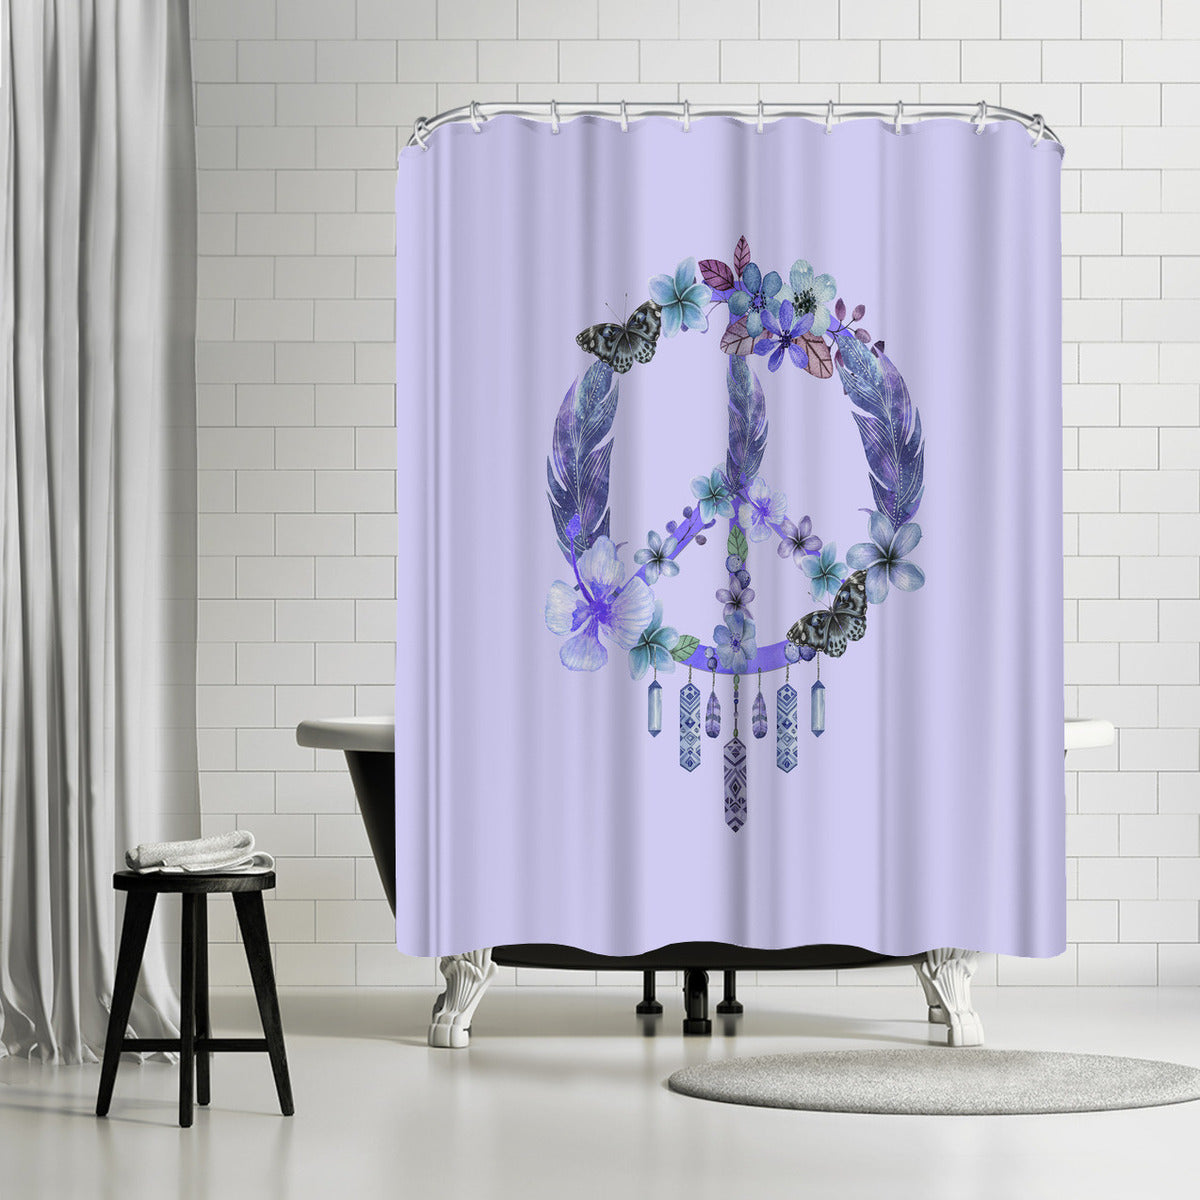 Dreaming Of Peace by Lebens Art Shower Curtain -  - Americanflat